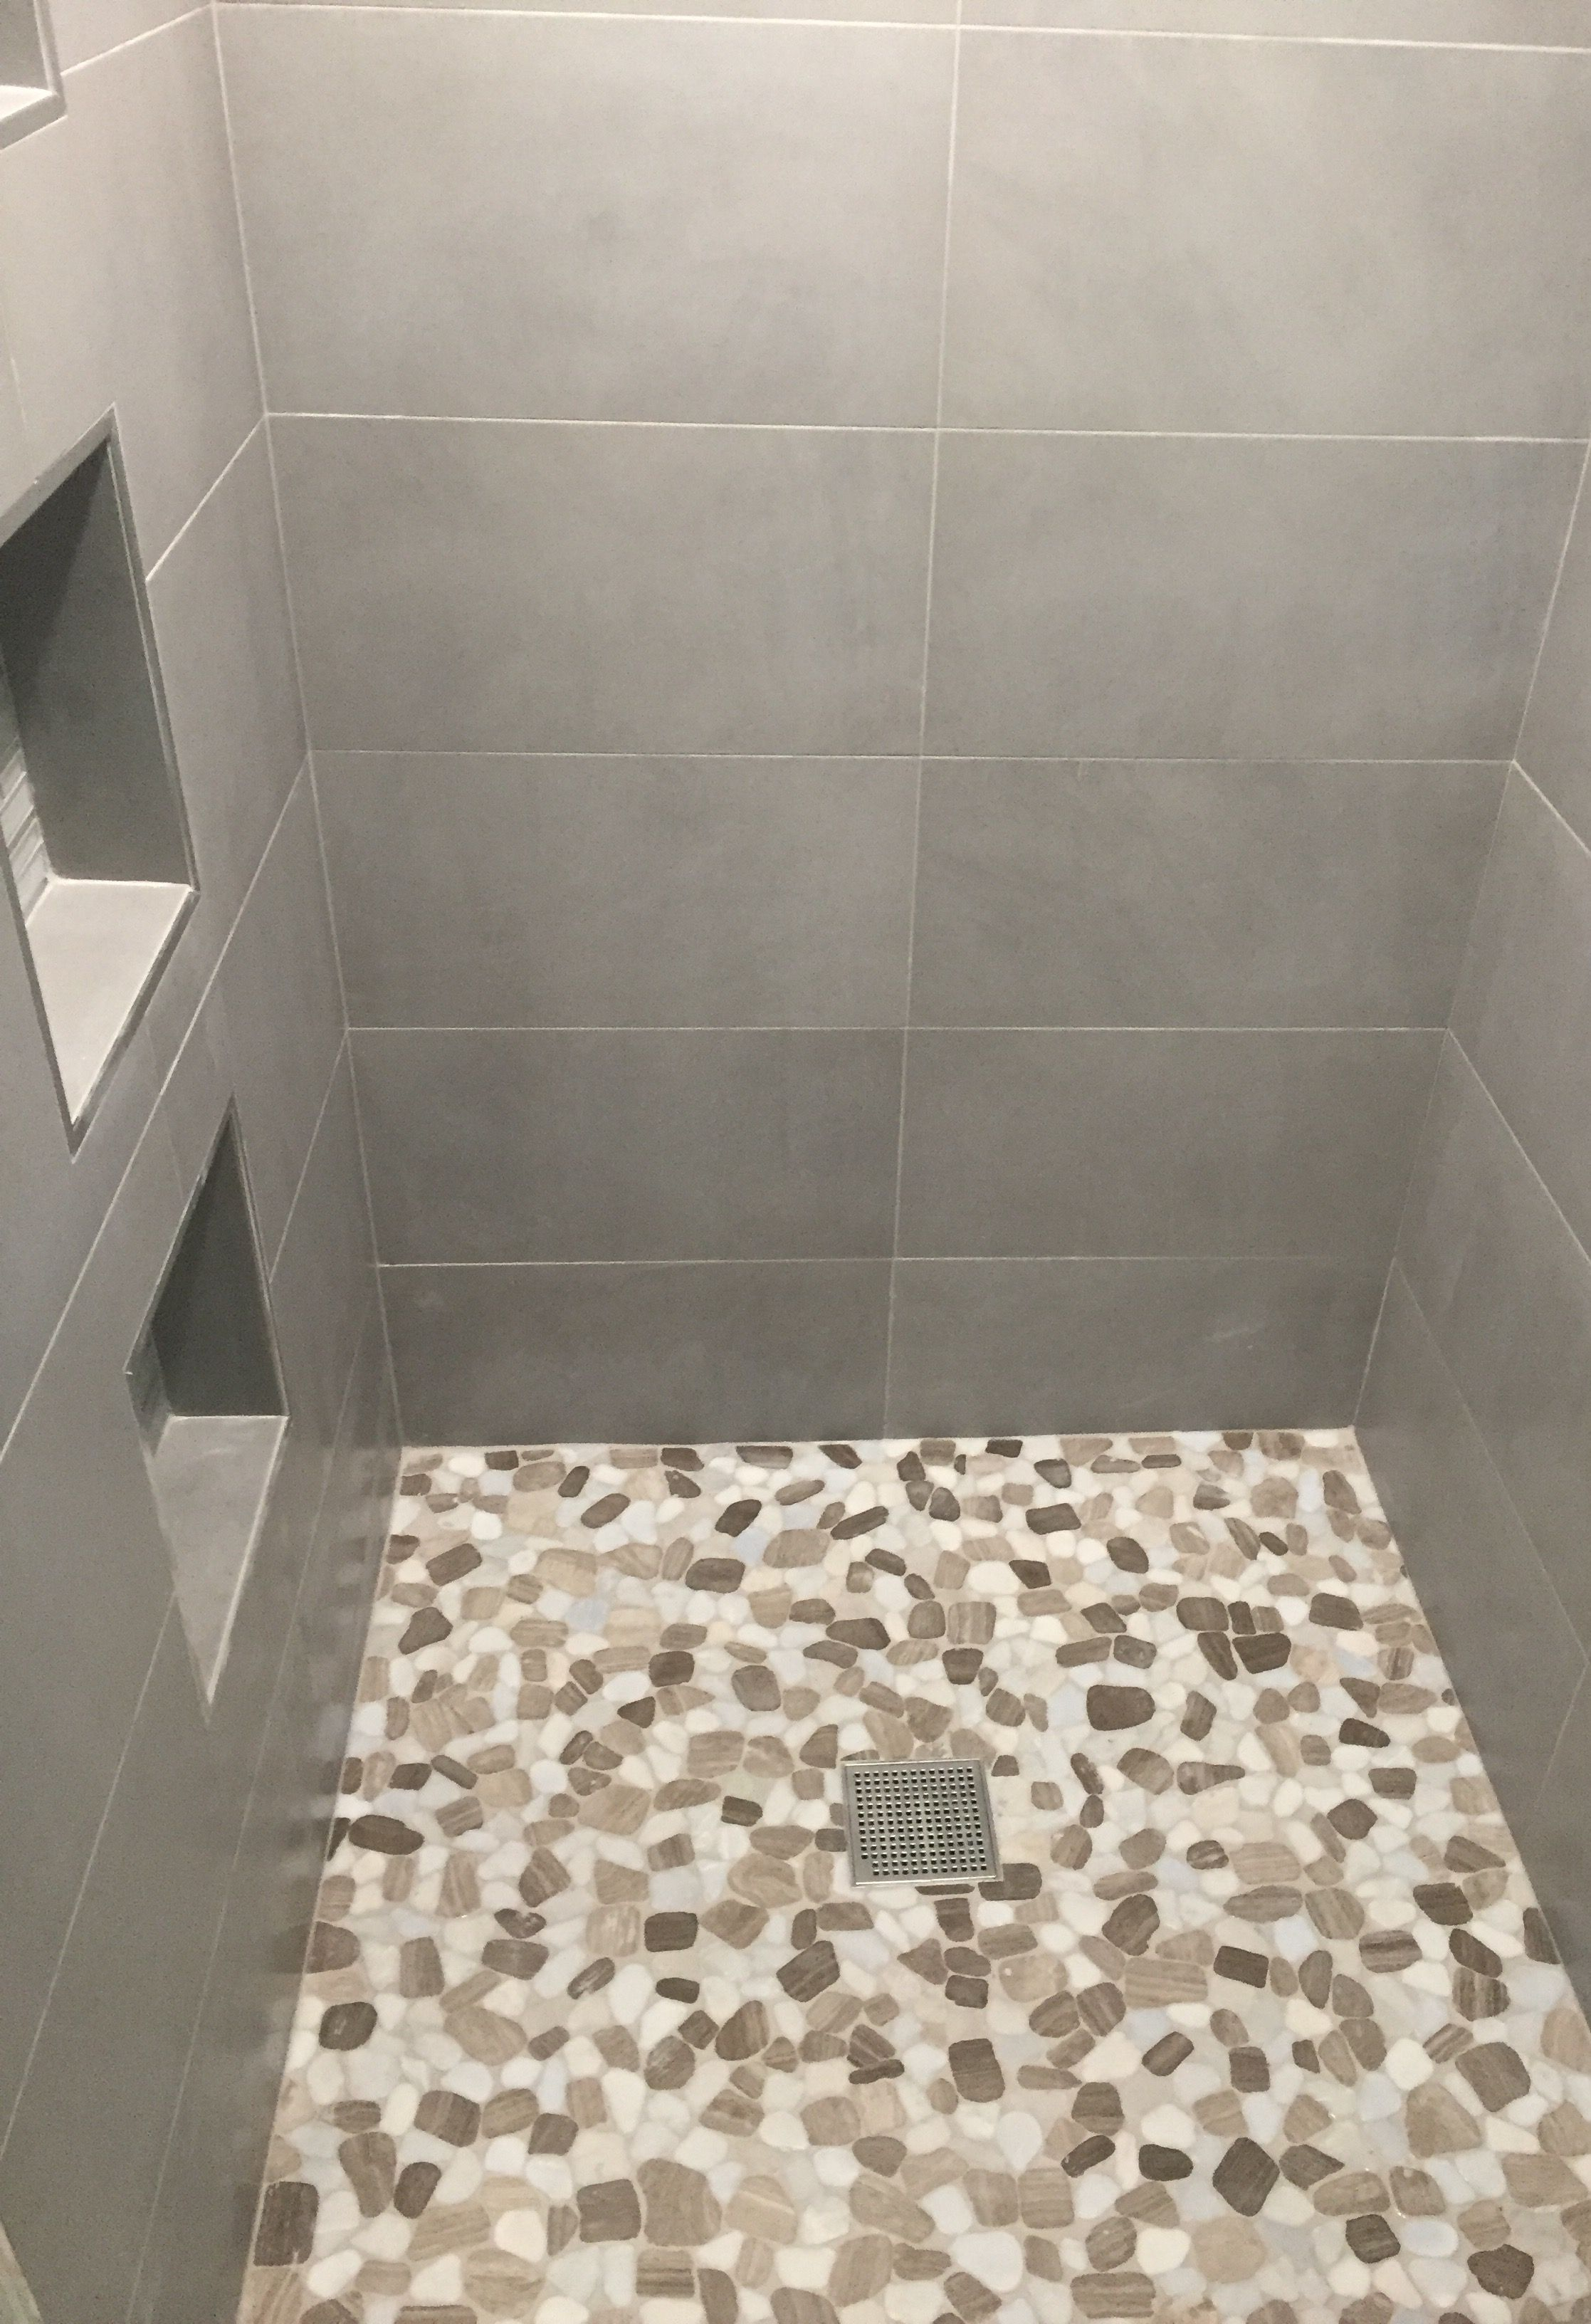 Gray 12x24 Matte Tile On Walls Moonlight Pebble Stone Mosaic On Shower Floor 12x12 Niches Are Elida Ceramics Linen Ice L Shower Floor Stone Mosaic Matte Tile